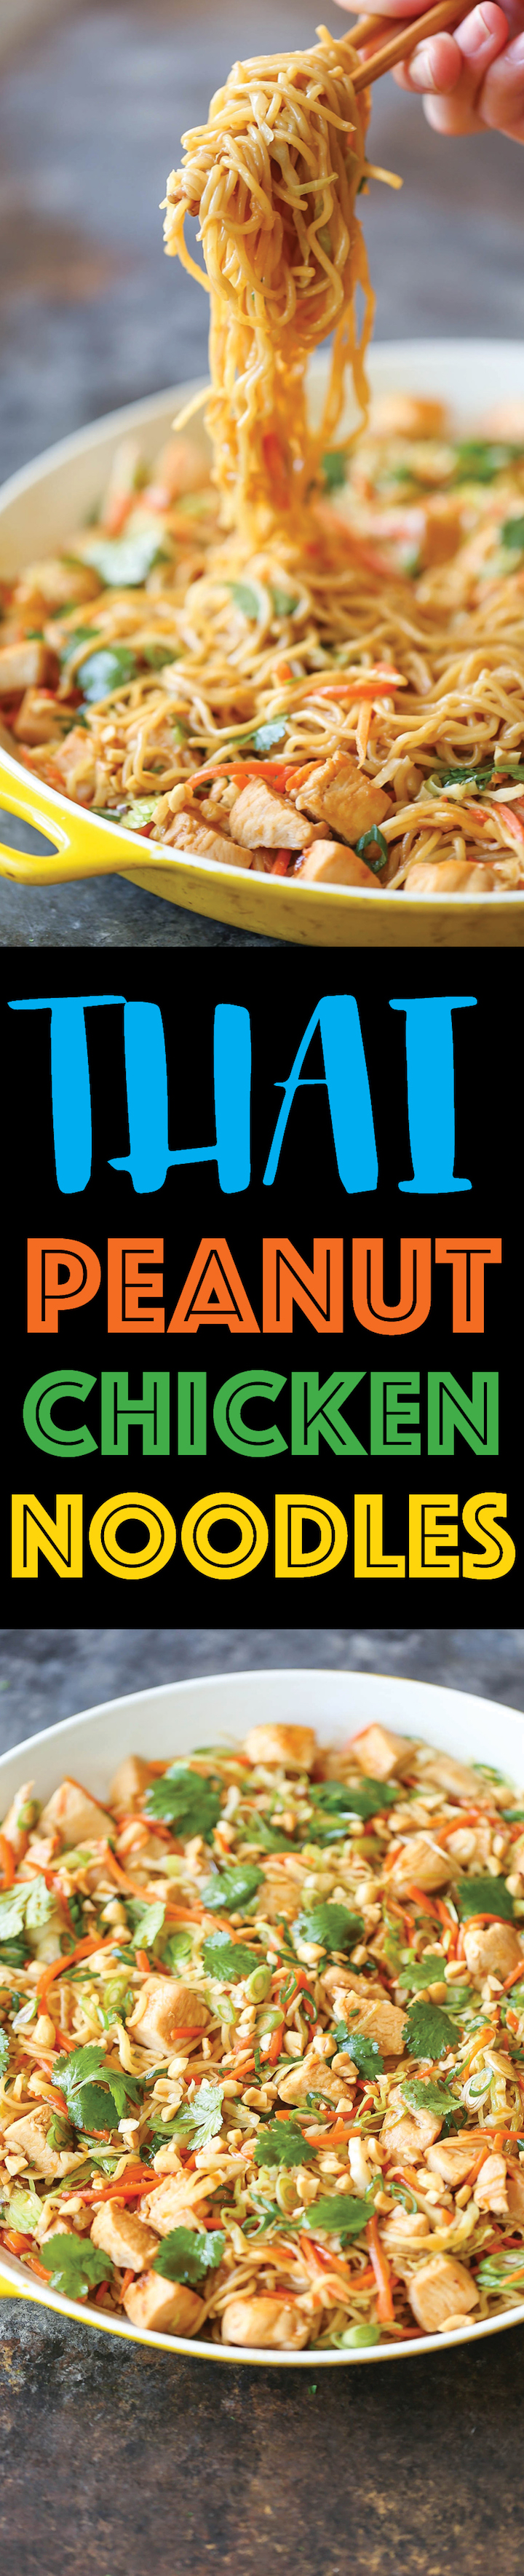 Thai Peanut Chicken Noodles - The quickest noodle dish you could ever whip up in less than 30 minutes. Full of flavor, and can be served as a side or main!